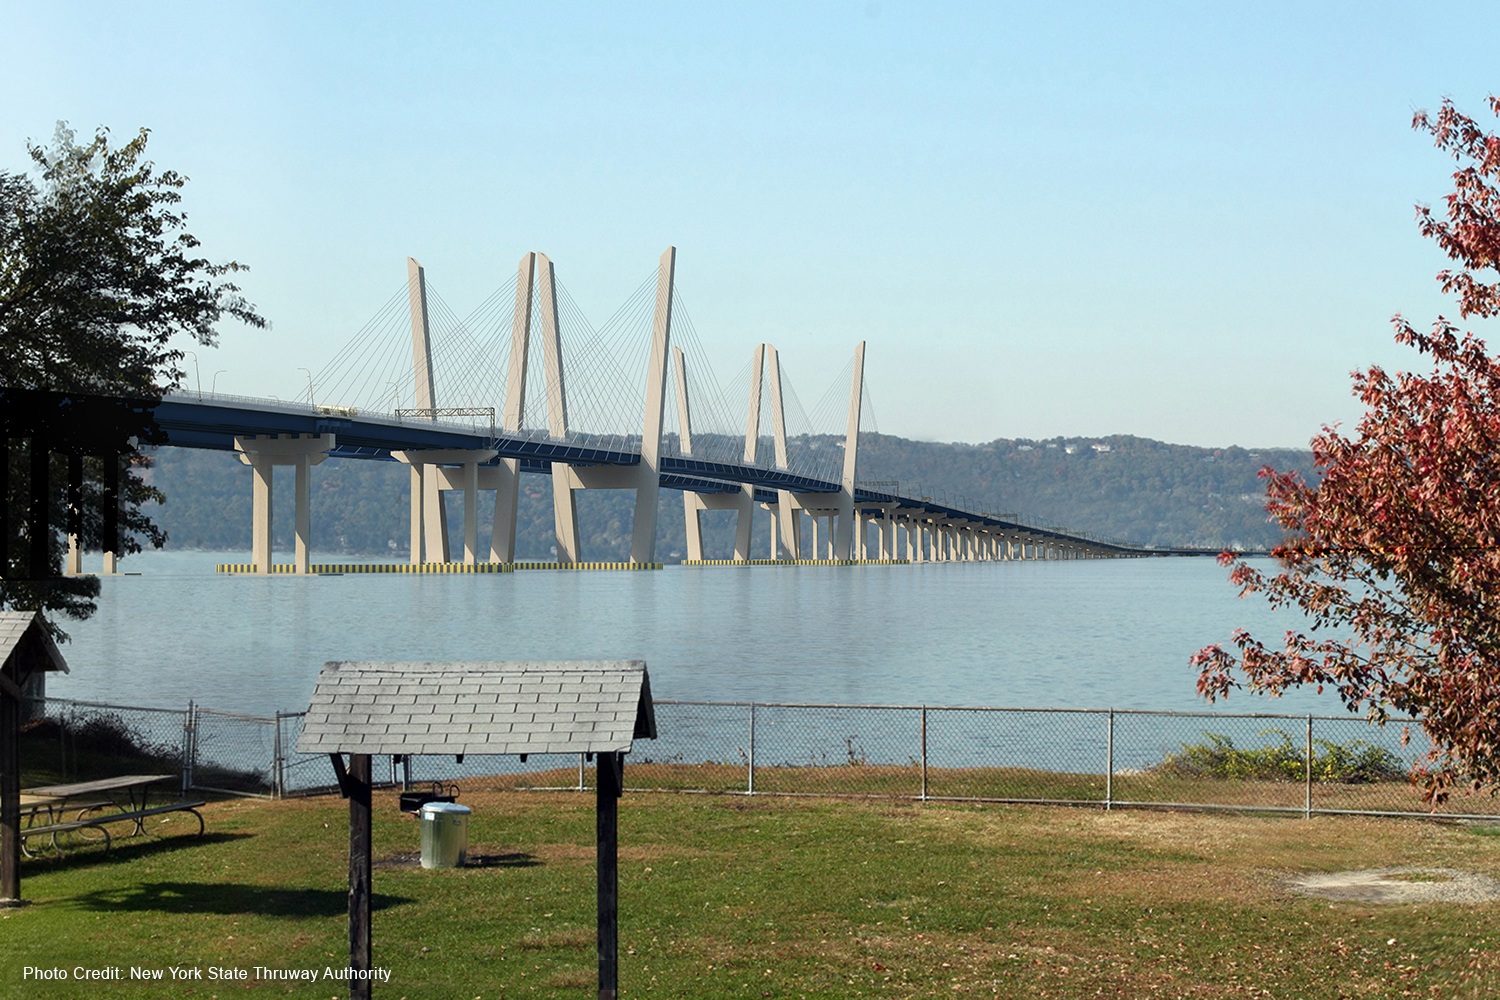 Rendering of New Tappan Zee Hudson River Crossing. Photo credit: New York State Thruway Authority